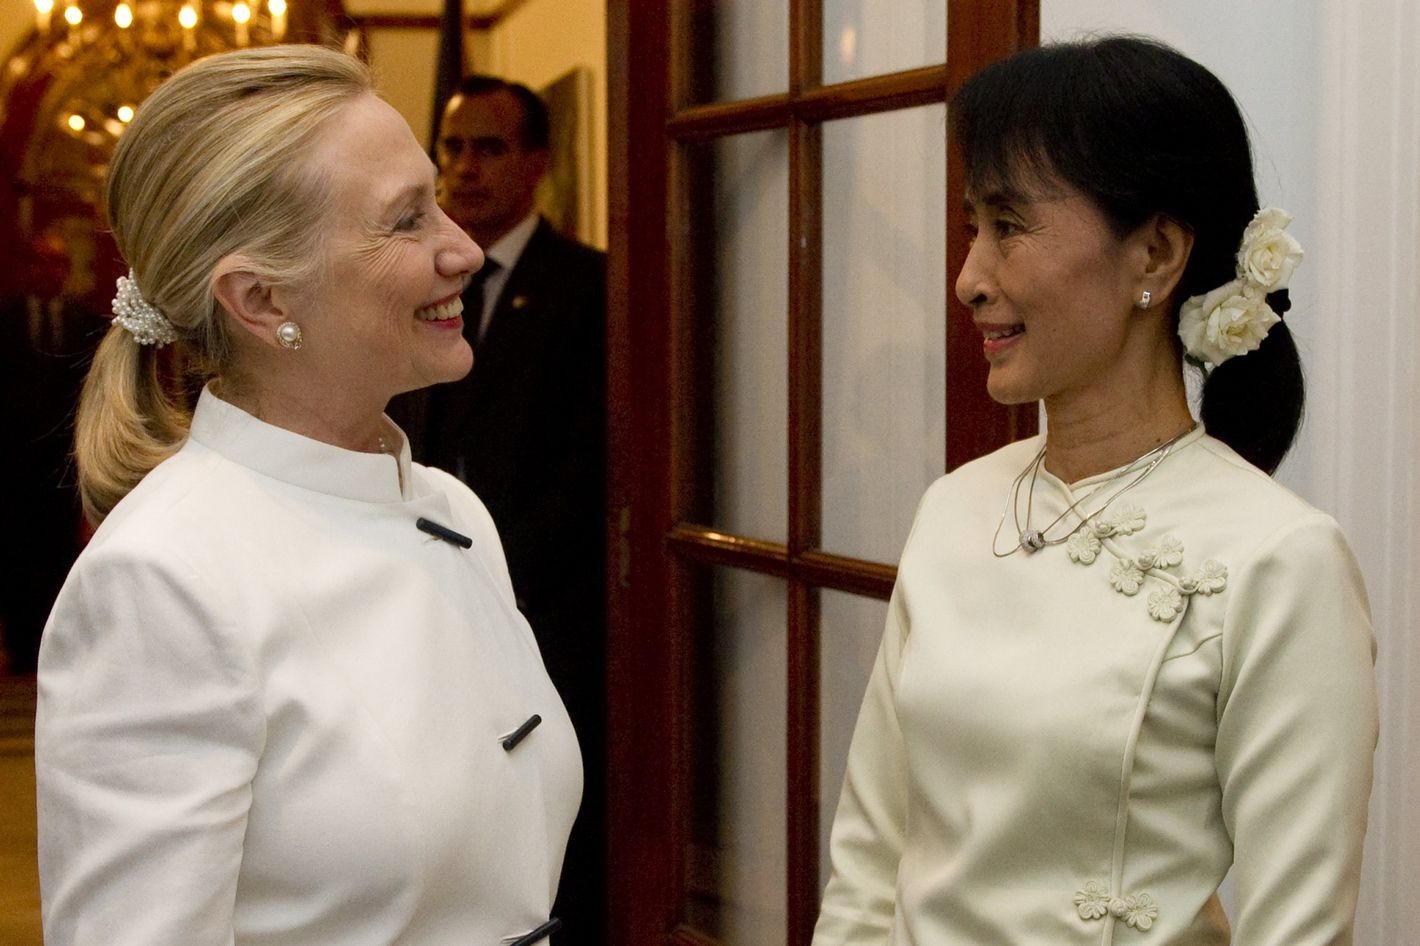 US Secretary of State Hillary Clinton(L) and pro-democracy opposition leader Aung San Suu Kyi talk prior to dinner at the US Chief of Mission Residence in Rangoon, Myanmar, December 1, 2011. Clinton is traveling to the country on a two-day visit, the first by a US Secretary of State in more than 50 years. AFP PHOTO / POOL / Saul LOEB (Photo credit should read SAUL LOEB/AFP/Getty Images)